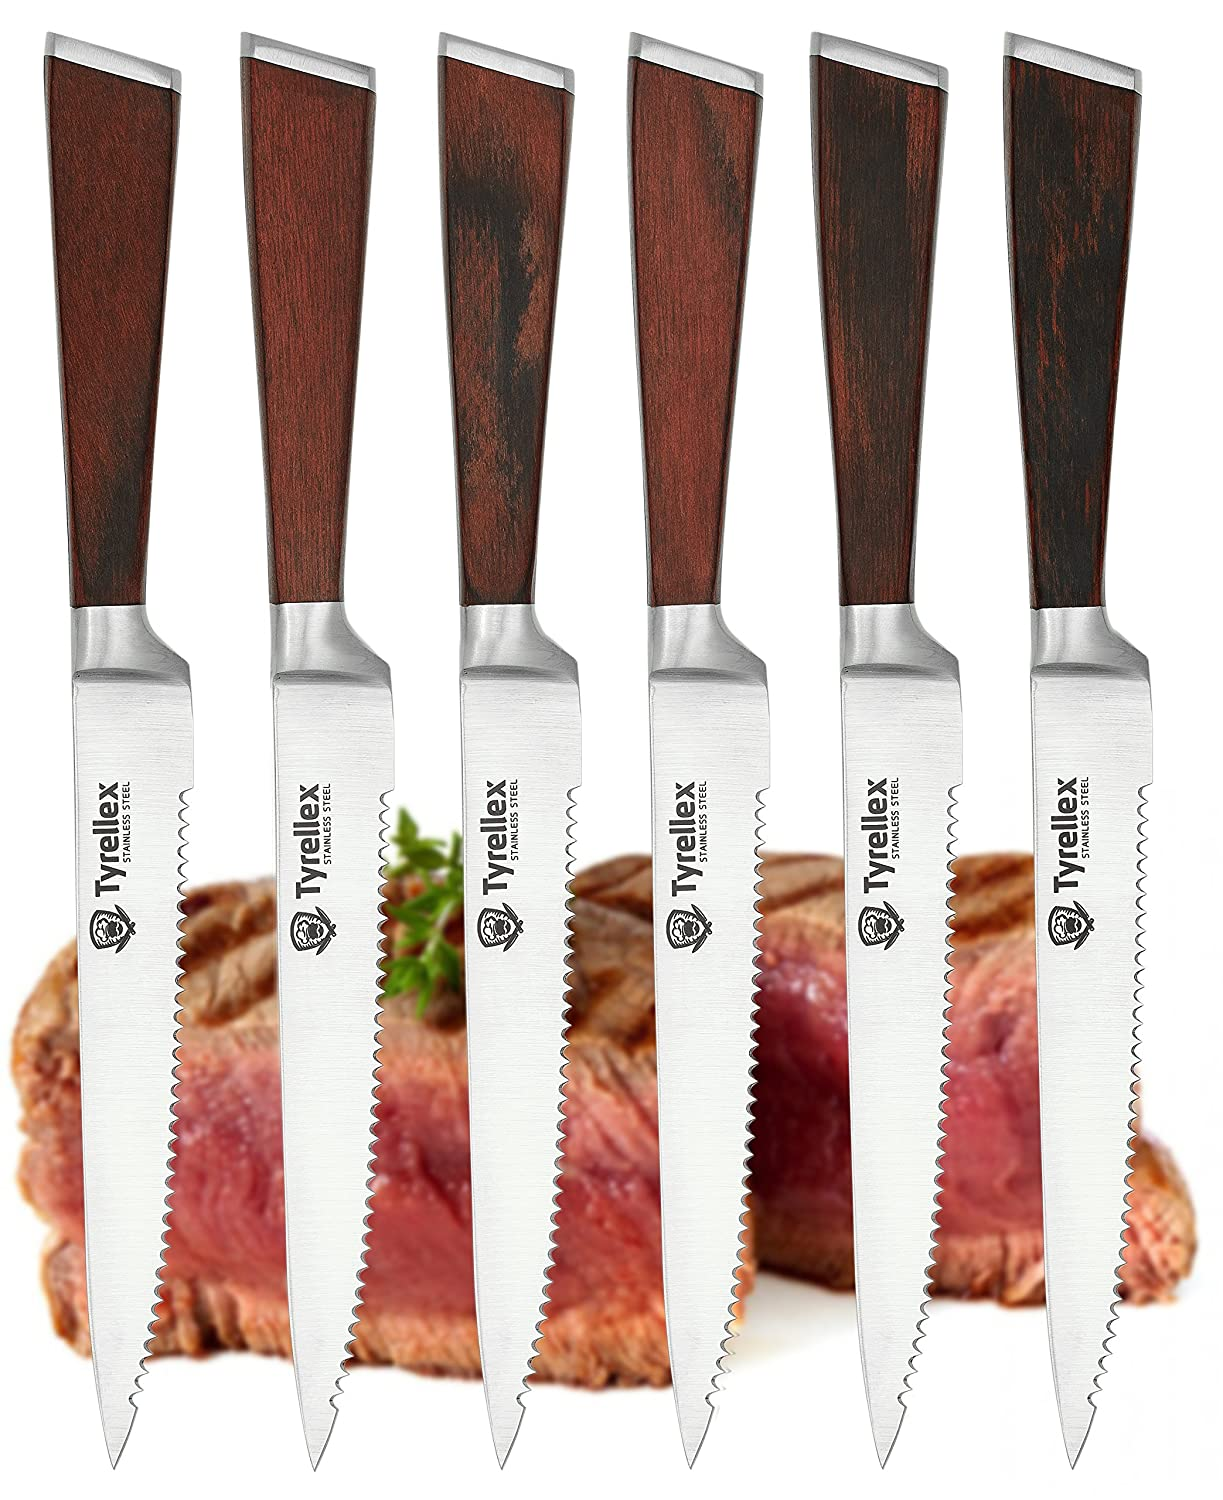 Premium german kitchen manufacturer and creator of the first handle - Amazon Com Tyrellex Steak Knives Premium Steak Knife Set 6 Pieces And Wood Gift Box Kitchen Dining